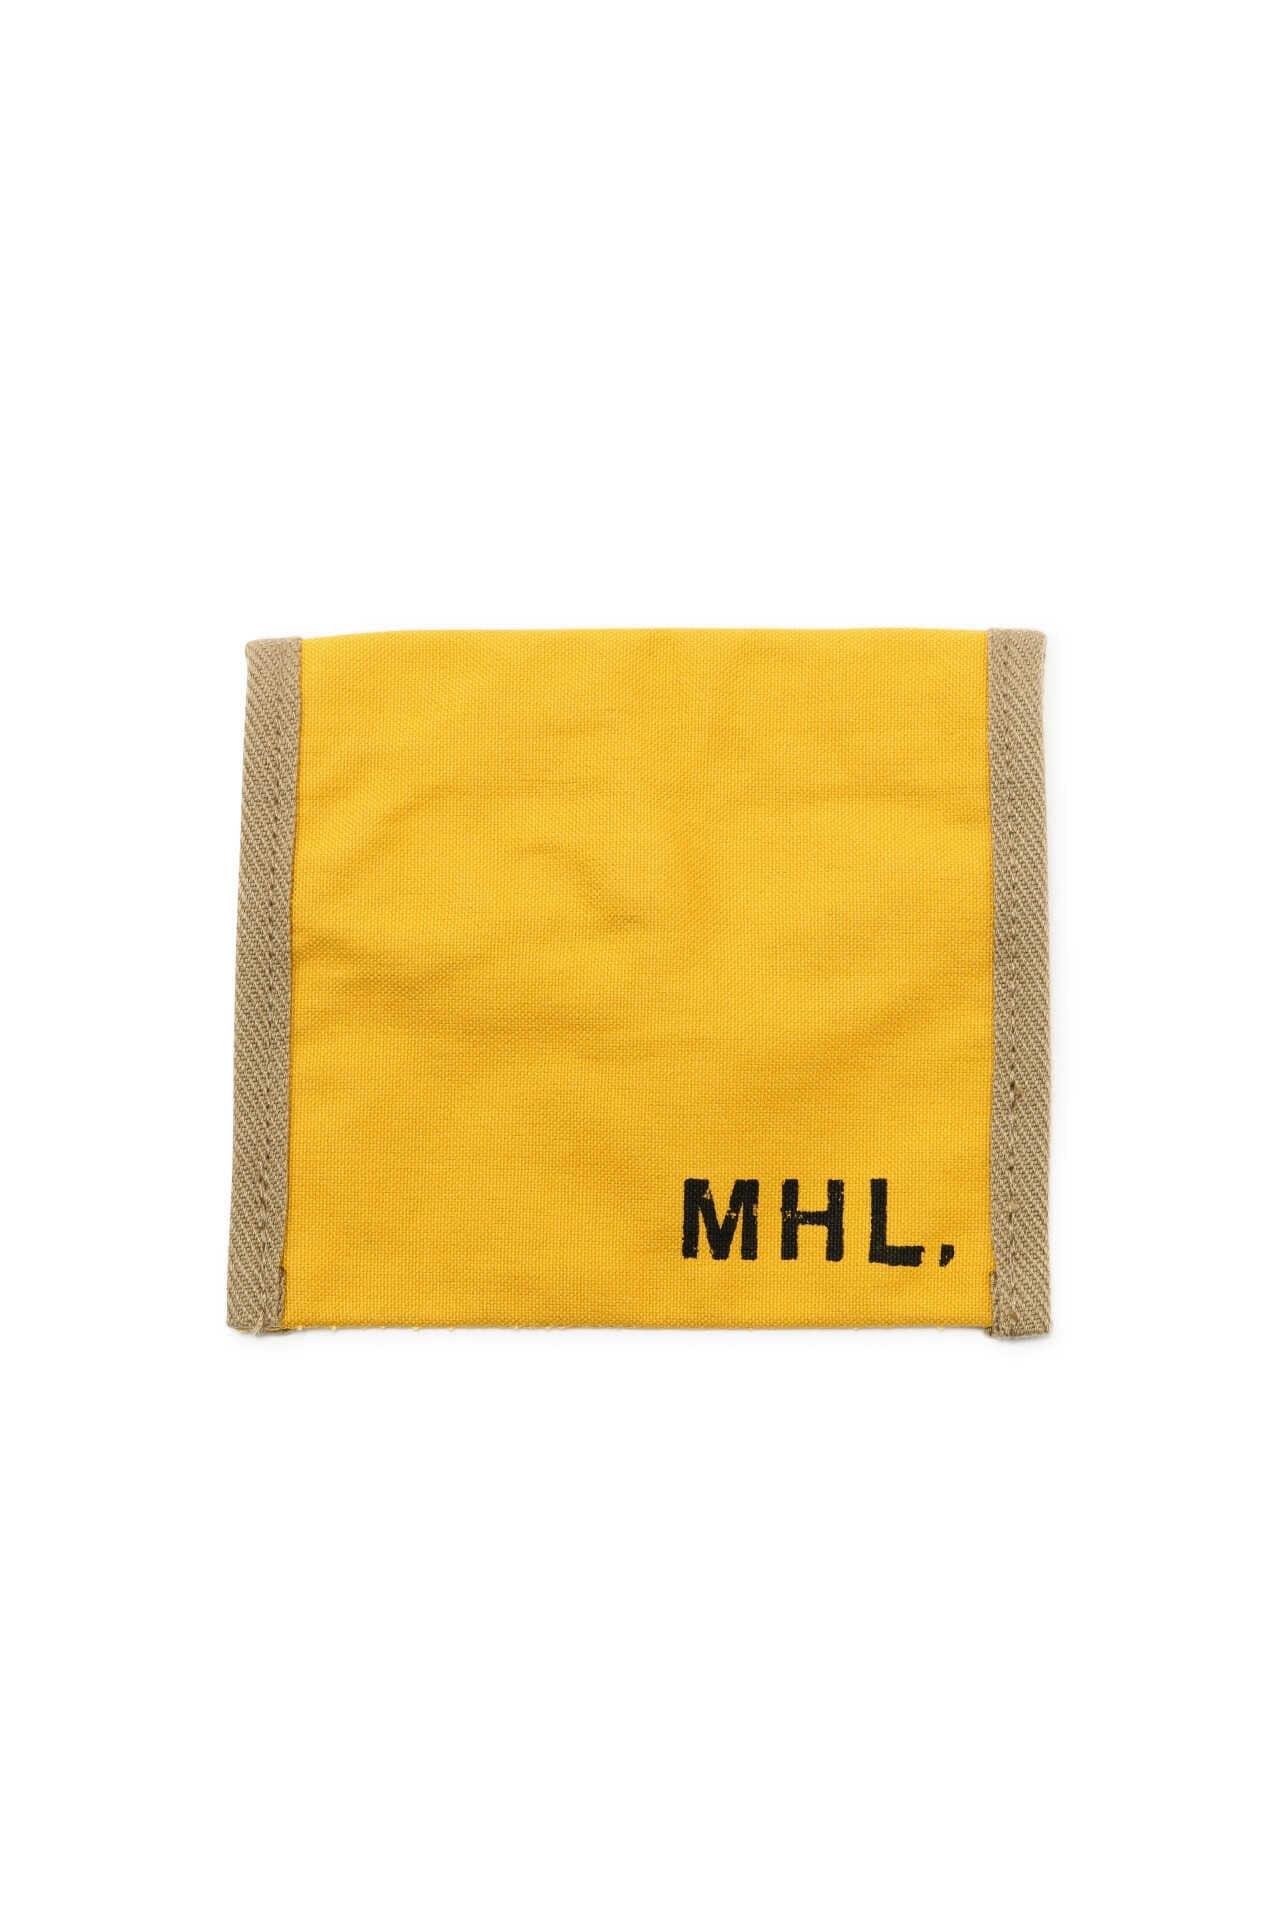 BASIC COTTON CANVAS(MHL SHOP限定)2